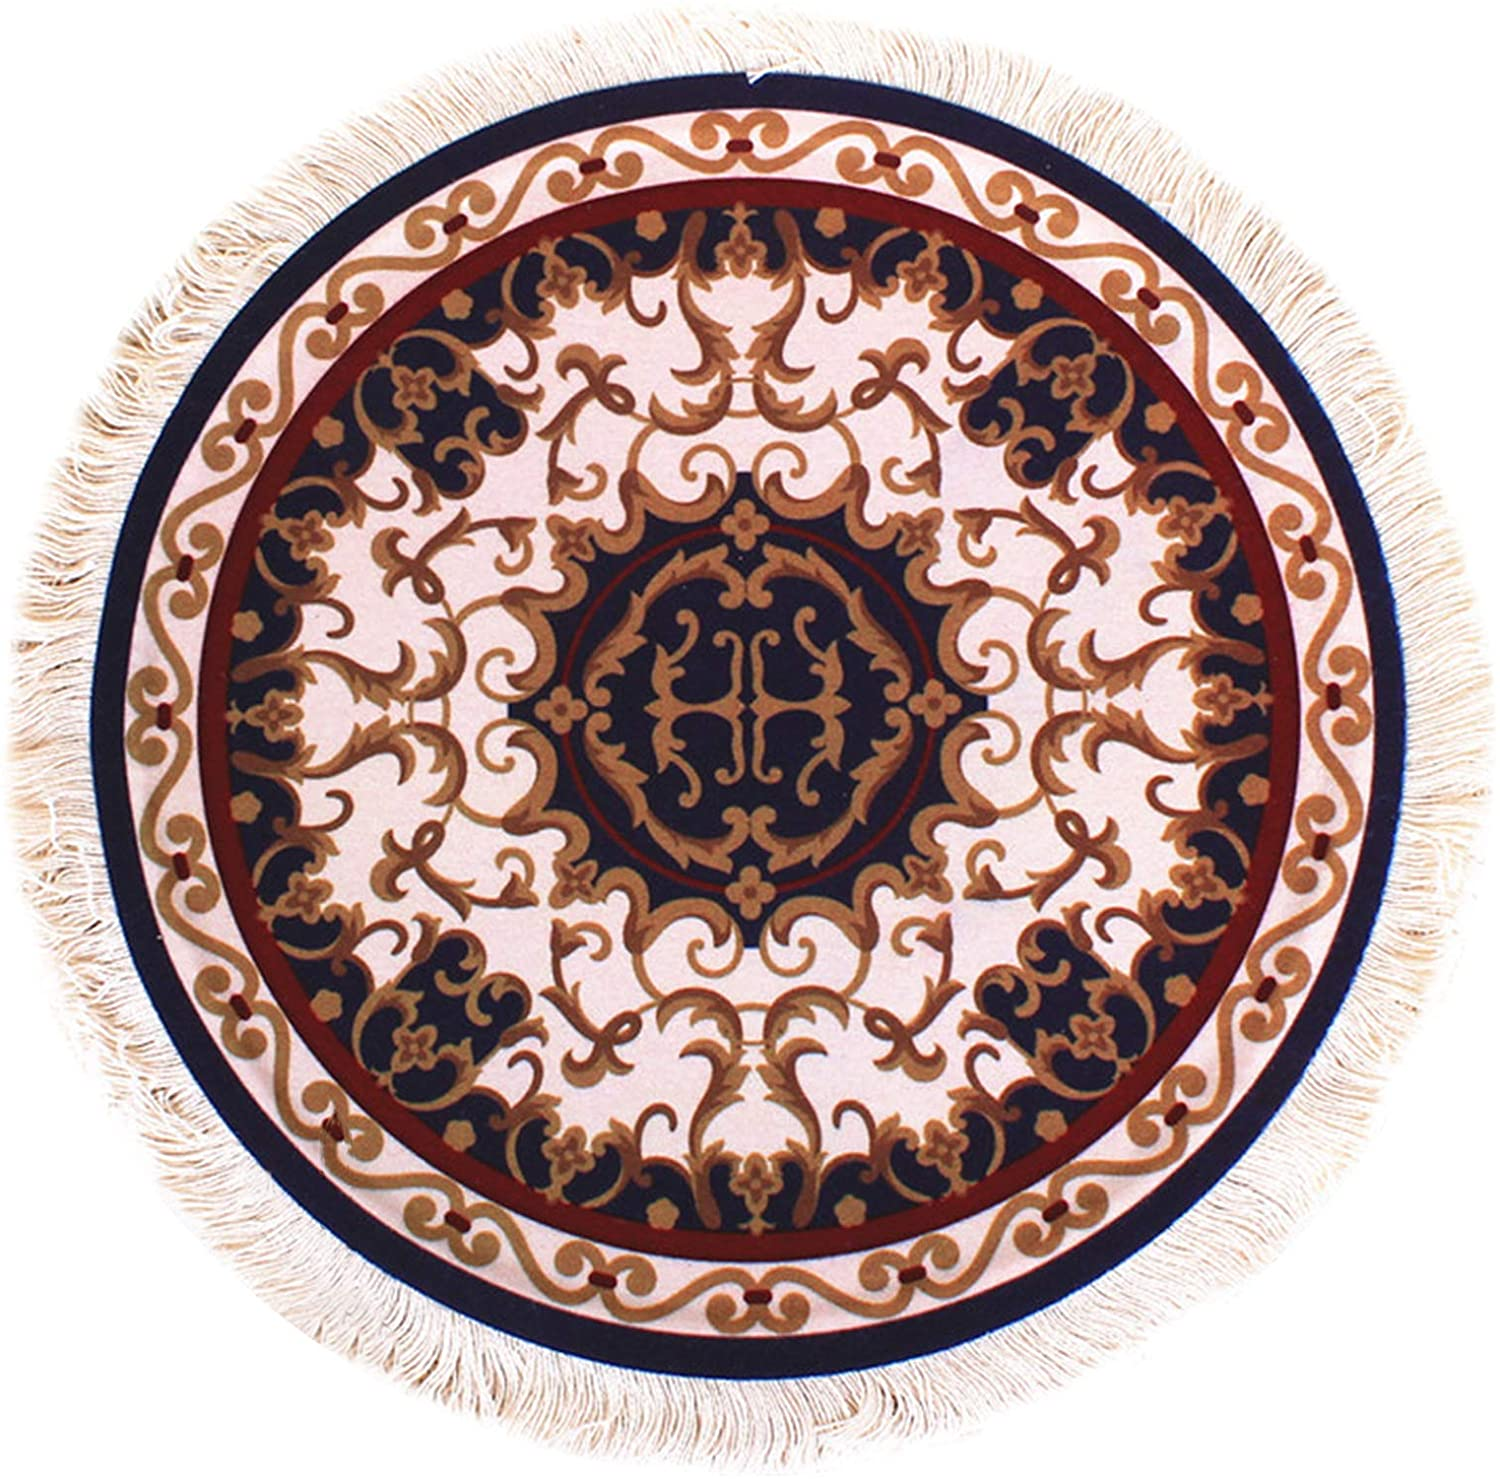 Queen.Y Round Coaster,10Inch Round Coaster Ethnic Style Table Drink Holder Plate Pad Mouse Mat Premium Design Decorative Coasters